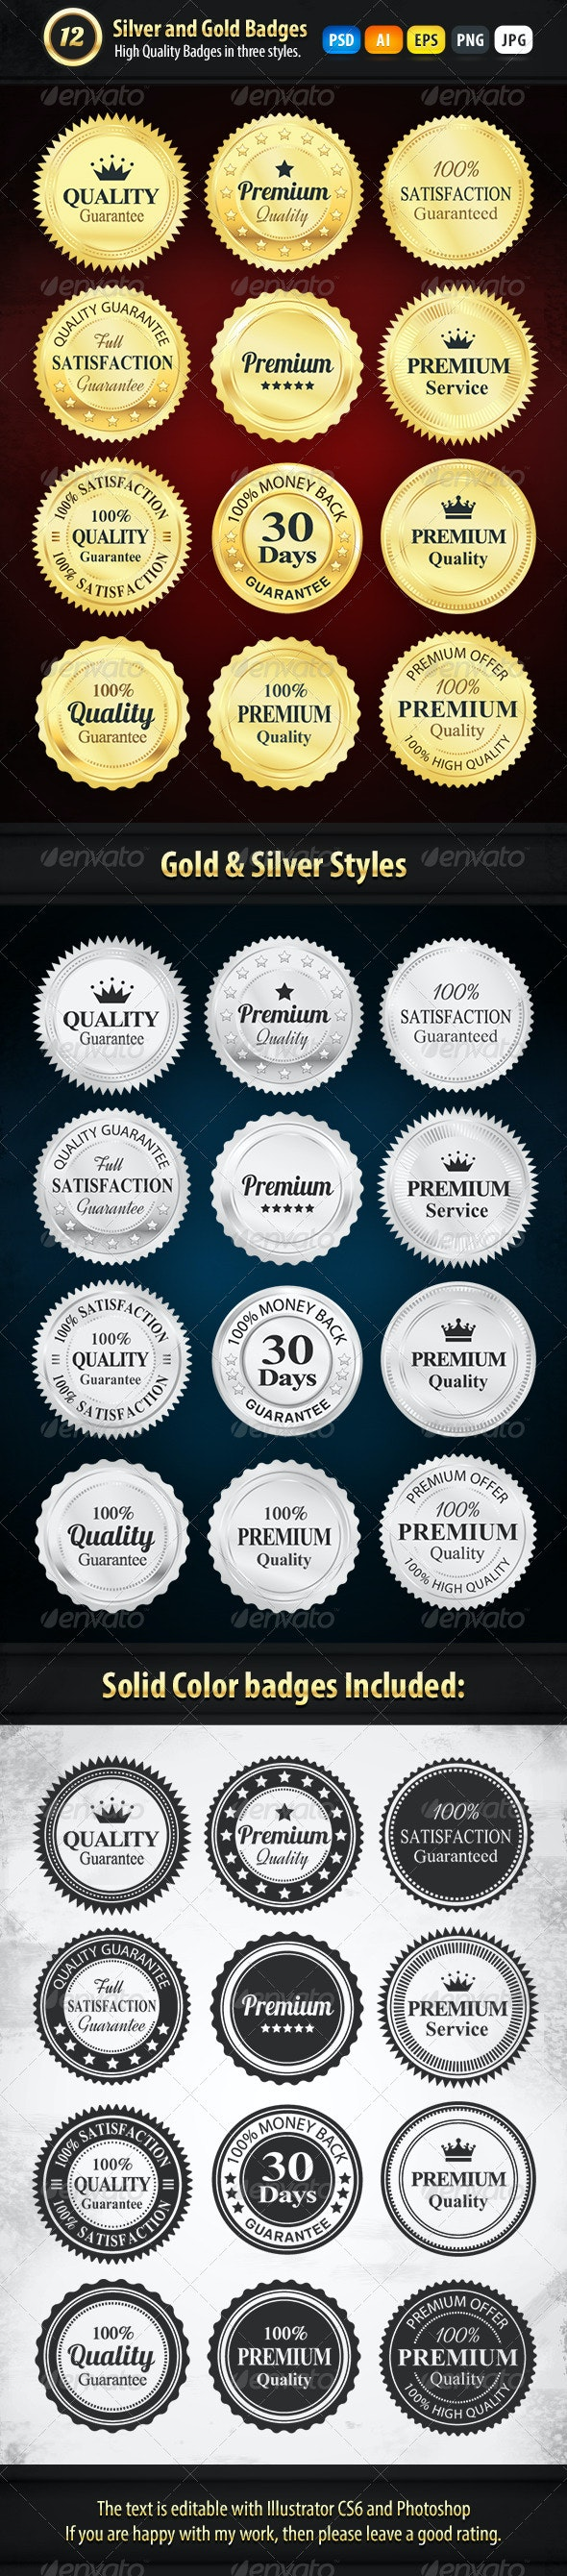 12 Gold And Silver Premium Badges - Badges & Stickers Web Elements